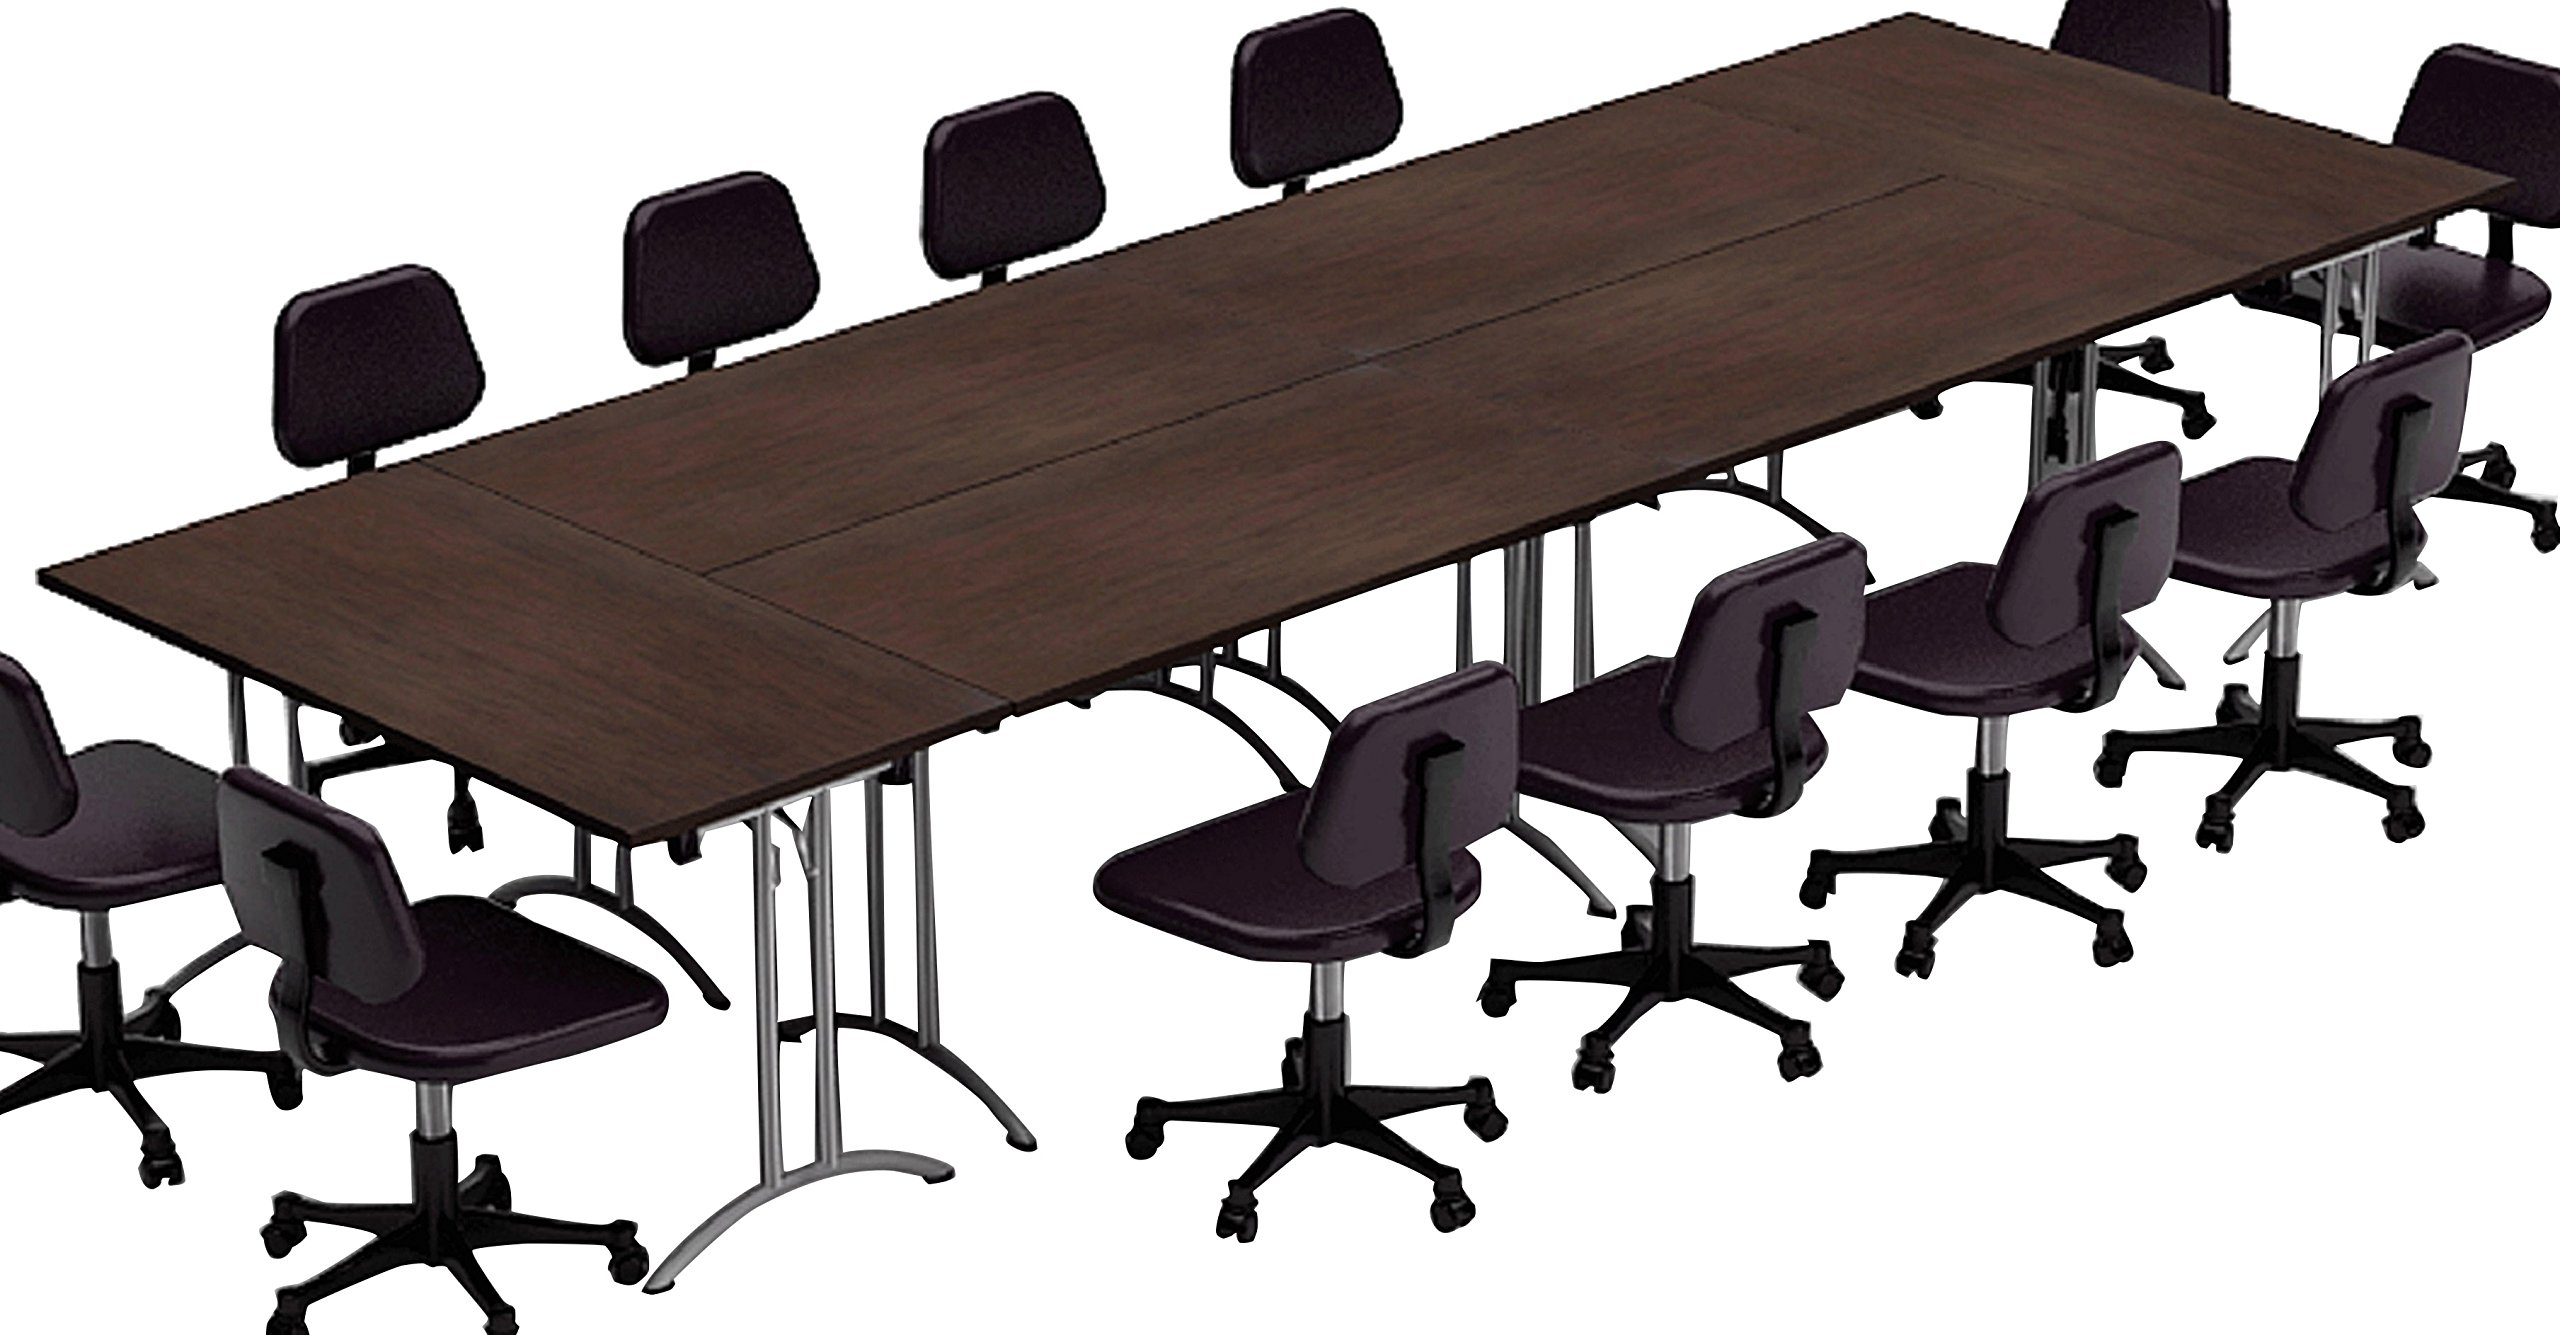 Cheap Meeting Tables For Sale Find Meeting Tables For Sale Deals On - Cheap meeting table